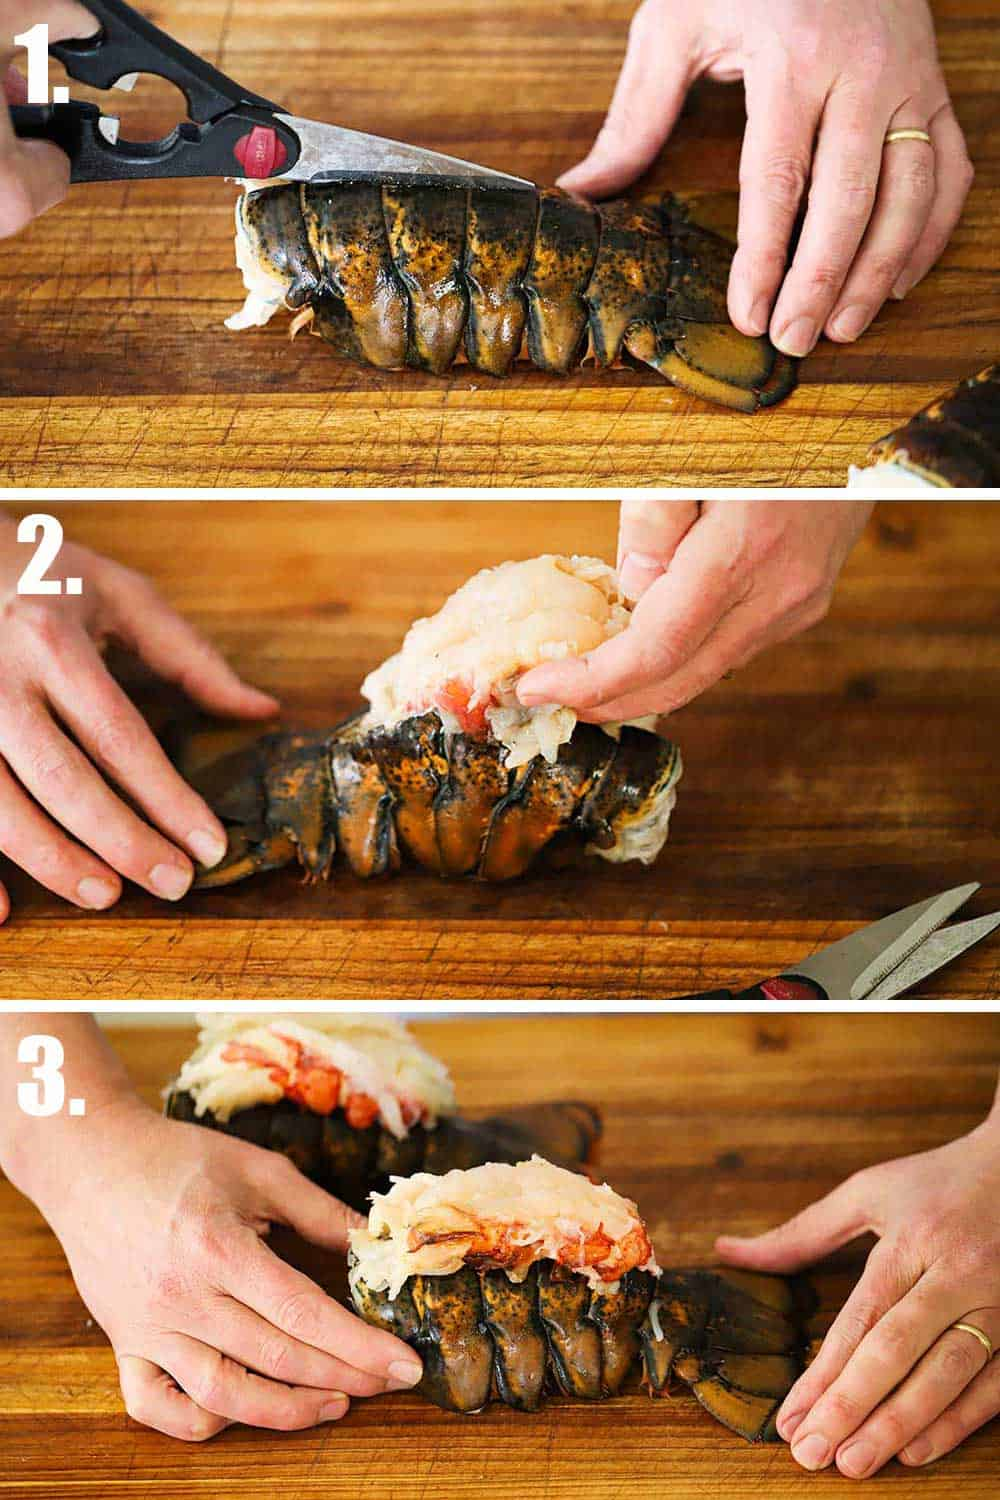 A person using kitchen shears to cut down the middle of an uncooked lobster tail and then that person removing the lobster meat and placing on top of the tail.